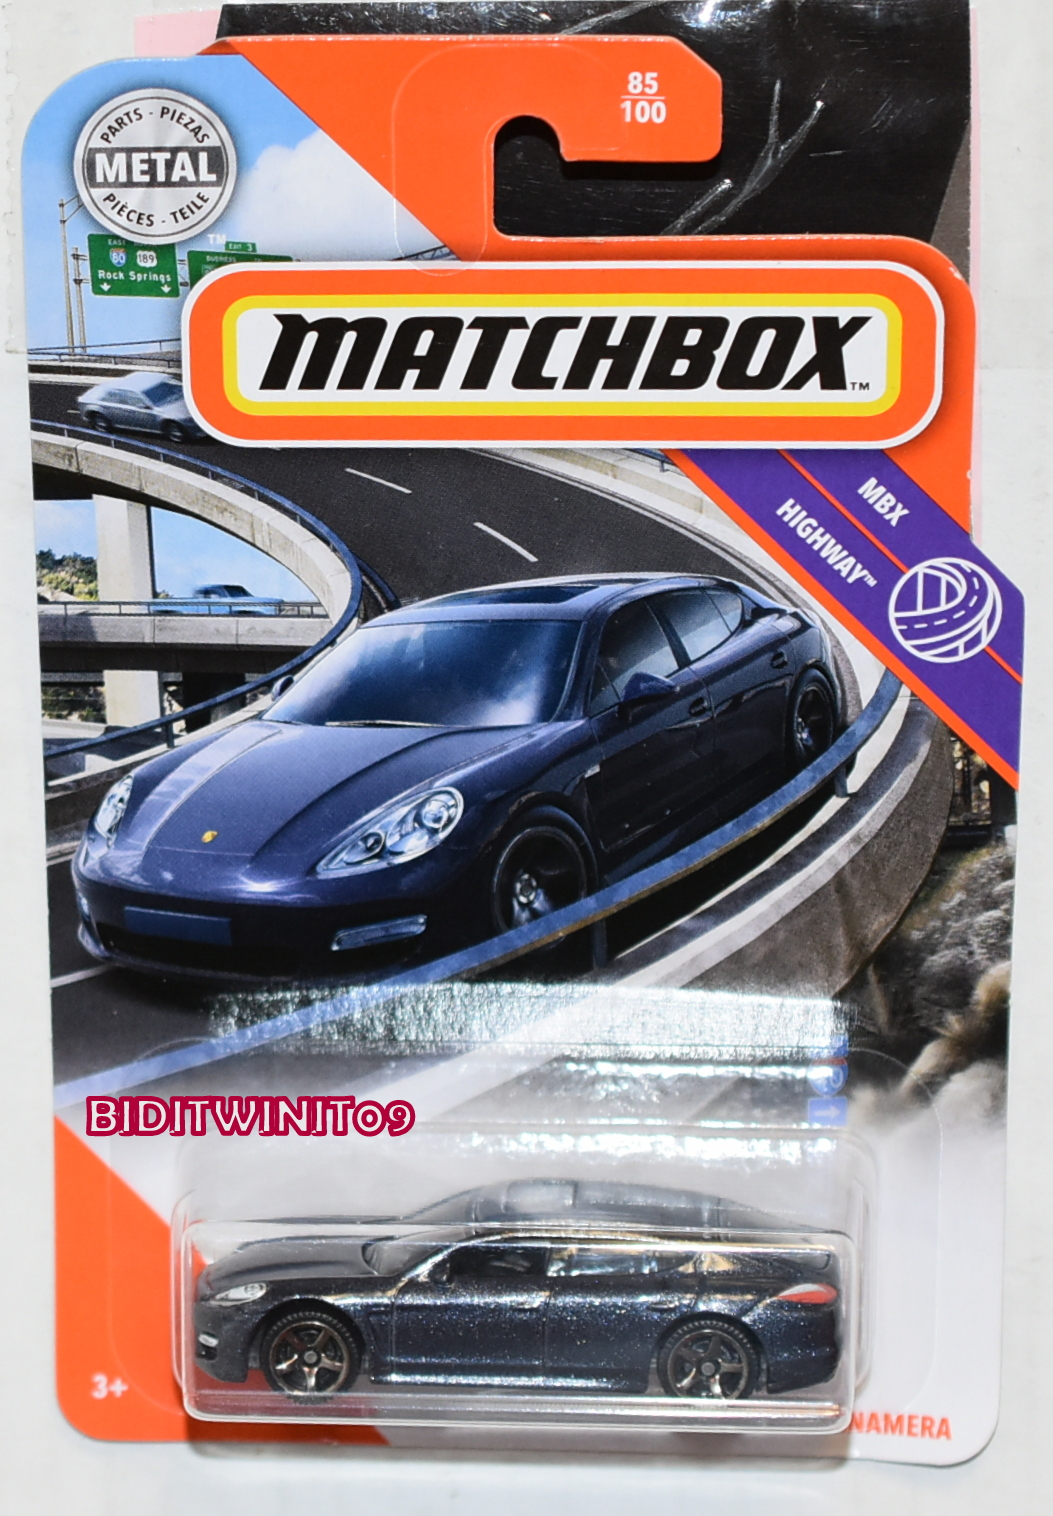 Matchbox 2020 2010 Porsche Panamera New Collectable Toy Model Car Short Card Contemporary Manufacture Toys Games